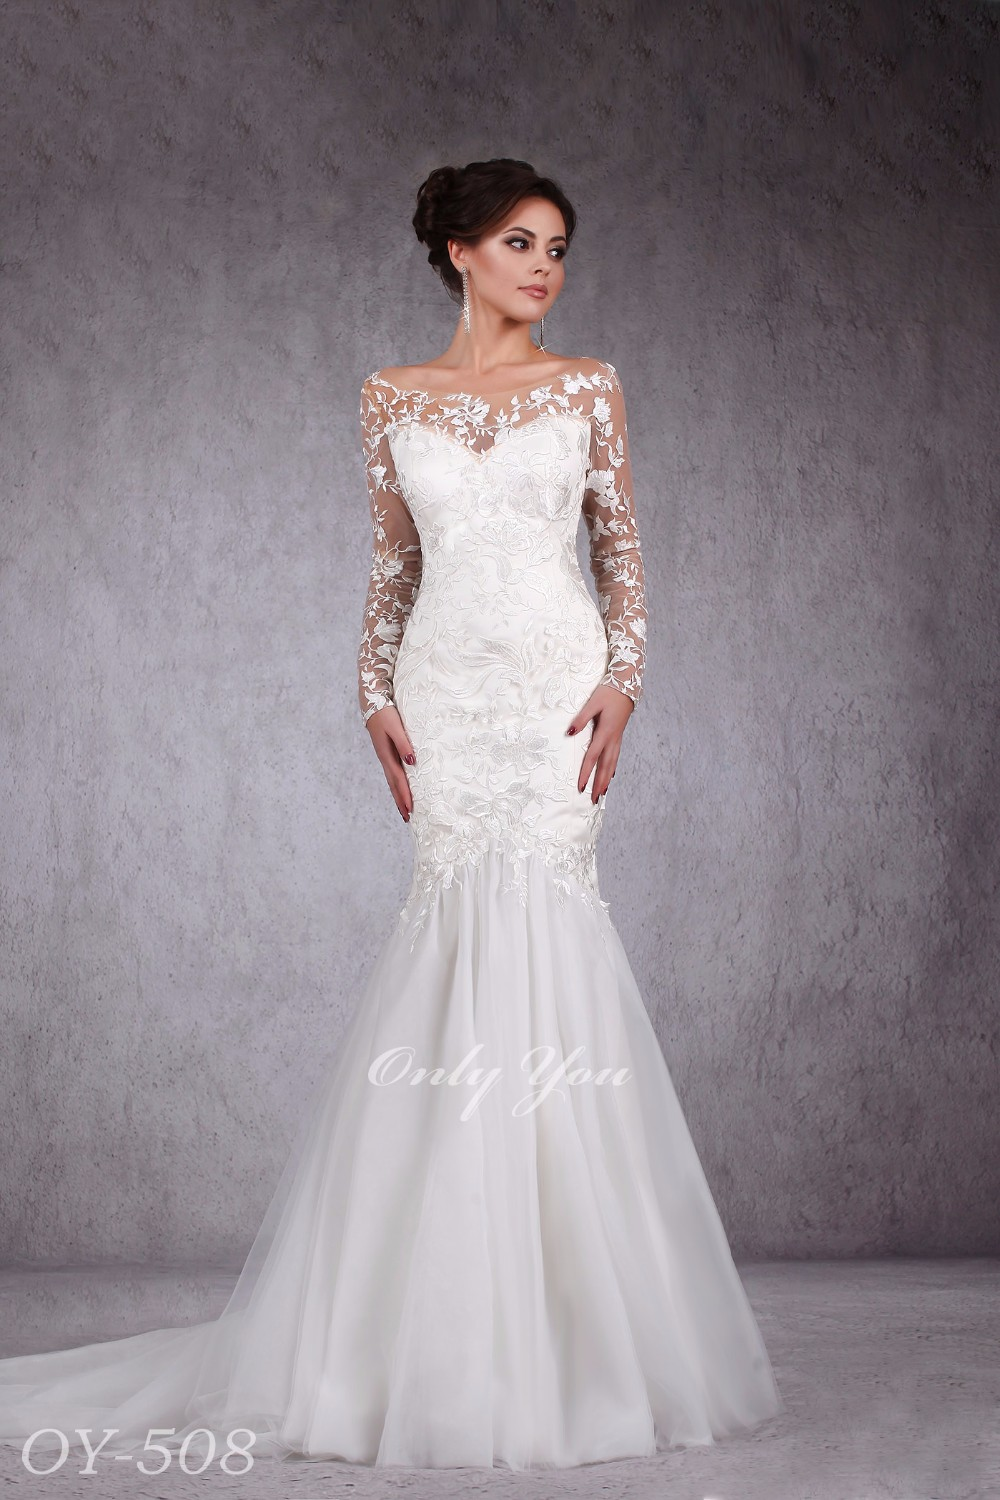 Sexy Fashinable Mermaid Wedding Dress Tender Assimetrical Floral Pattern See Through Back Long Sleeves Lux